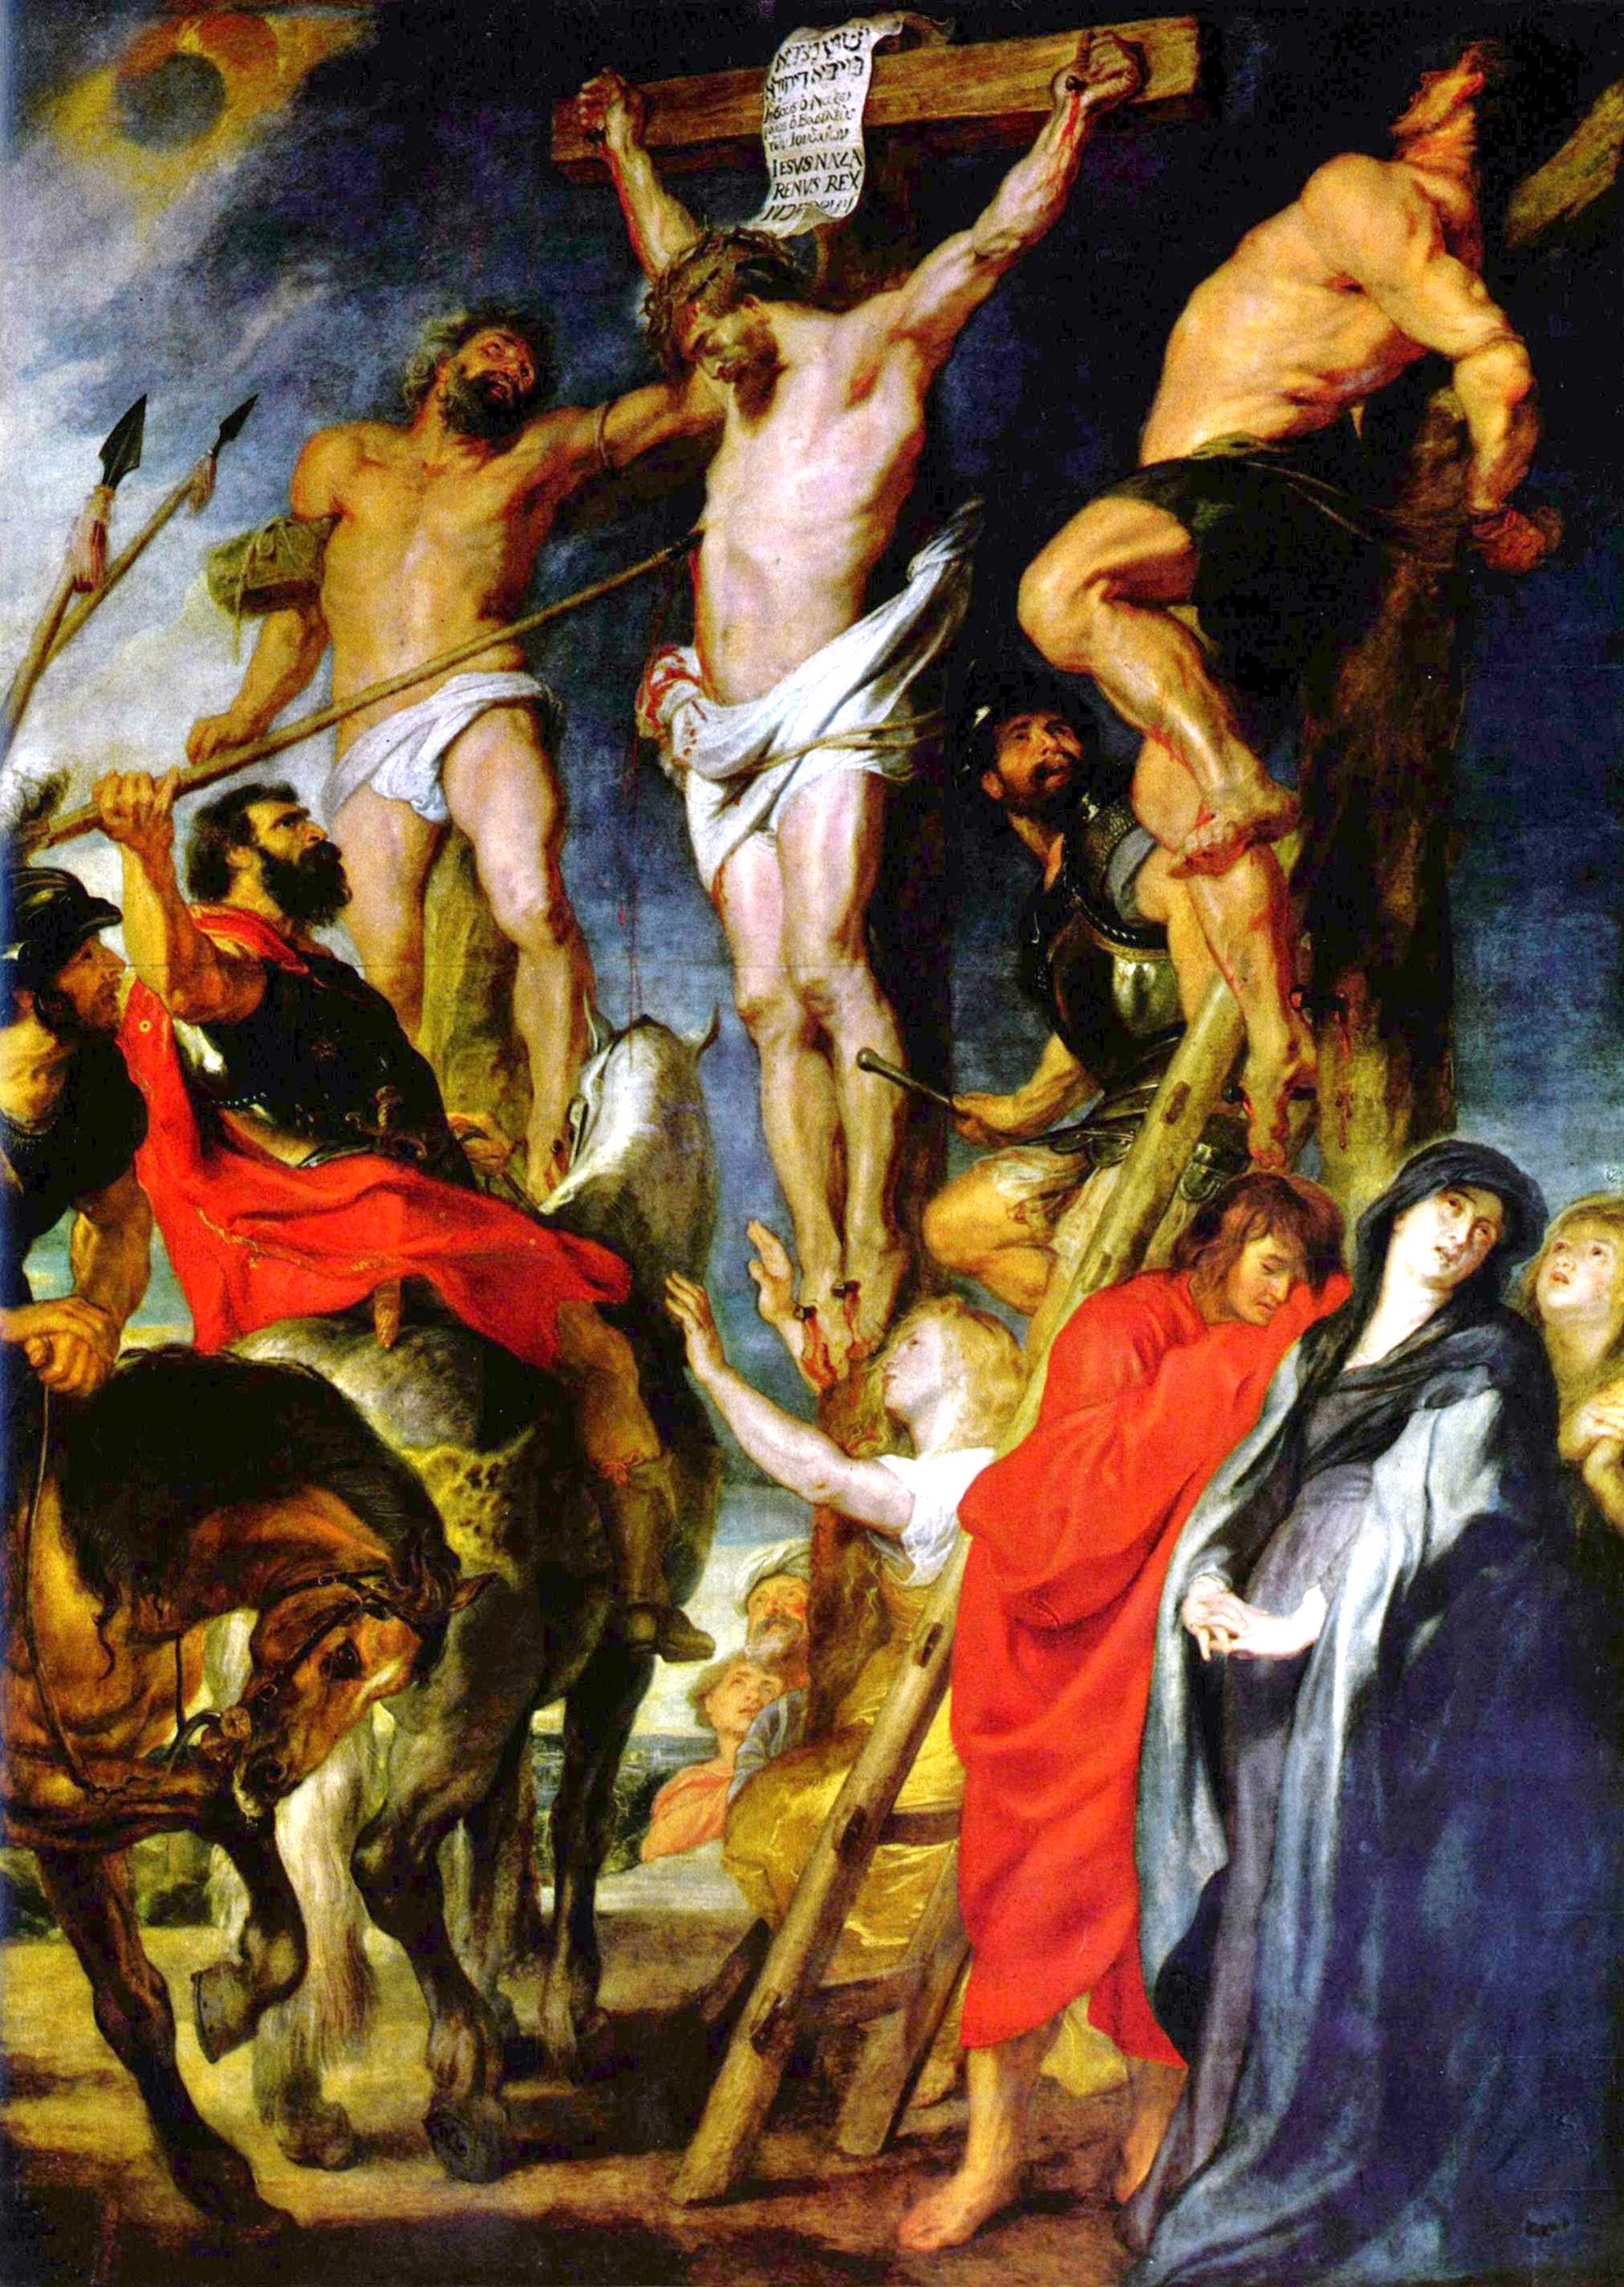 https://upload.wikimedia.org/wikipedia/commons/5/59/Peter_Paul_Rubens_069.jpg